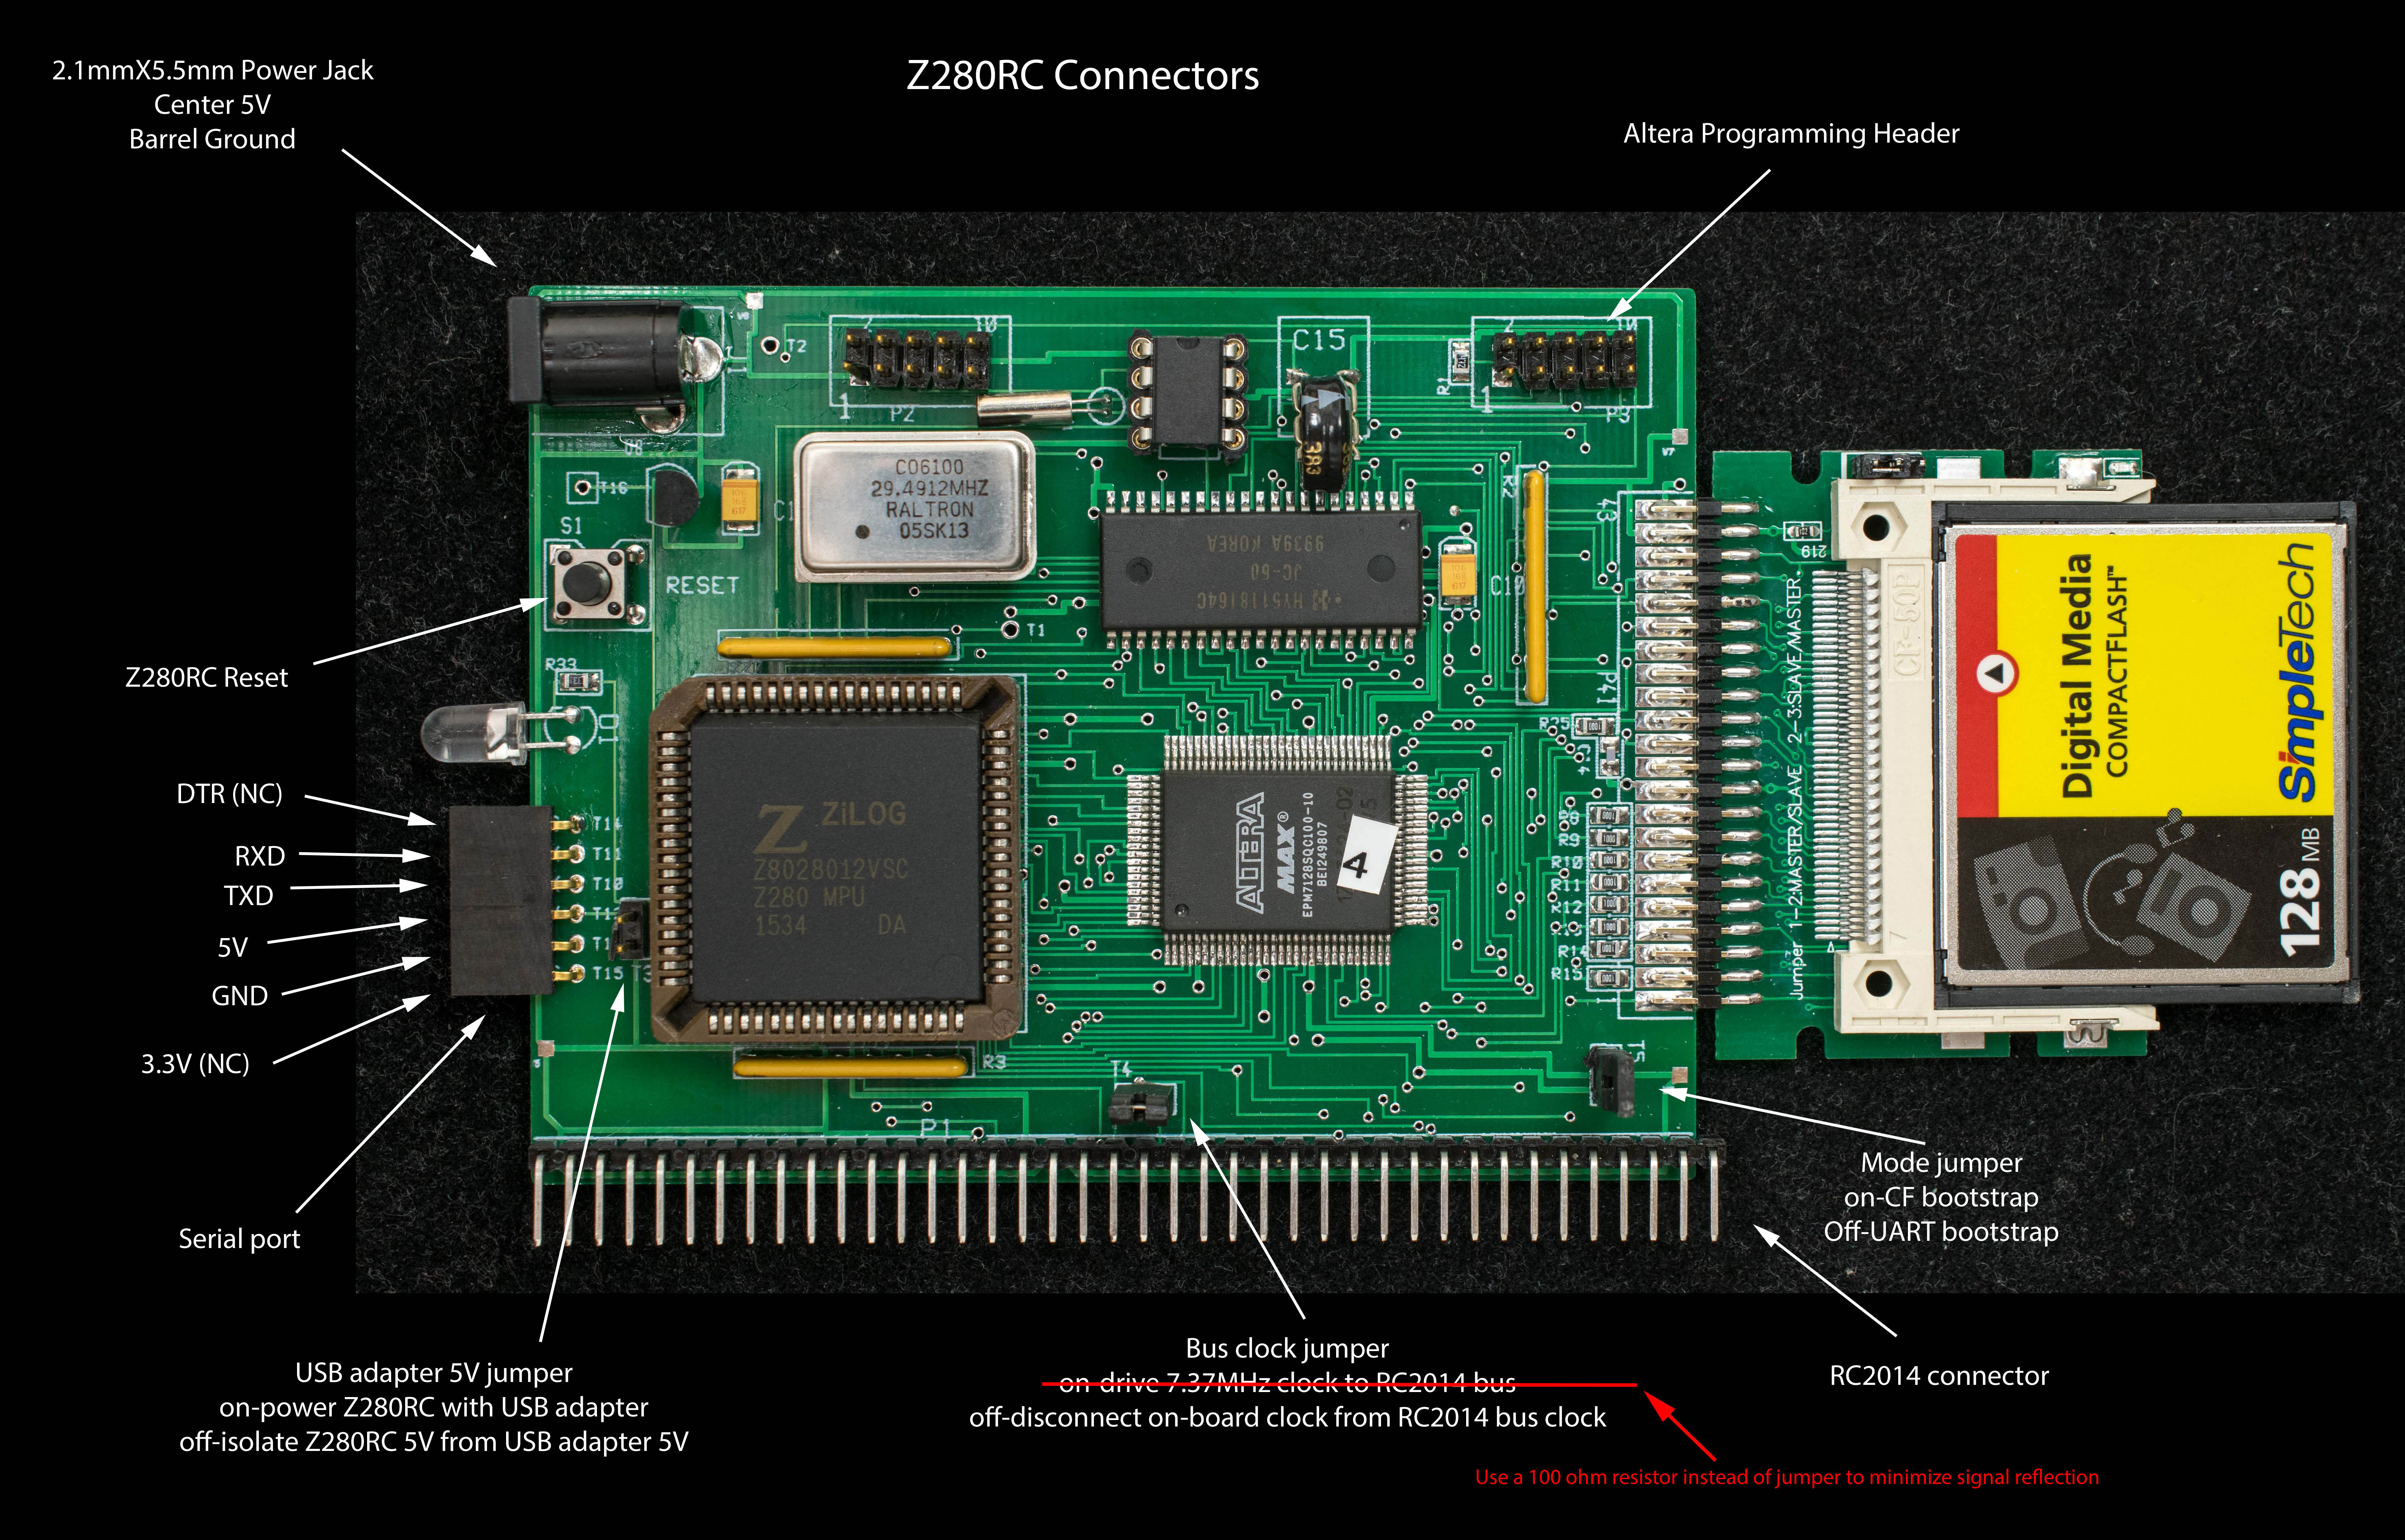 www.retrobrewcomputers.org_lib_plugins_ckgedit_fckeditor_userfiles_image_builderpages_plasmo_z280rc_z280rc_connectors_copy.jpg